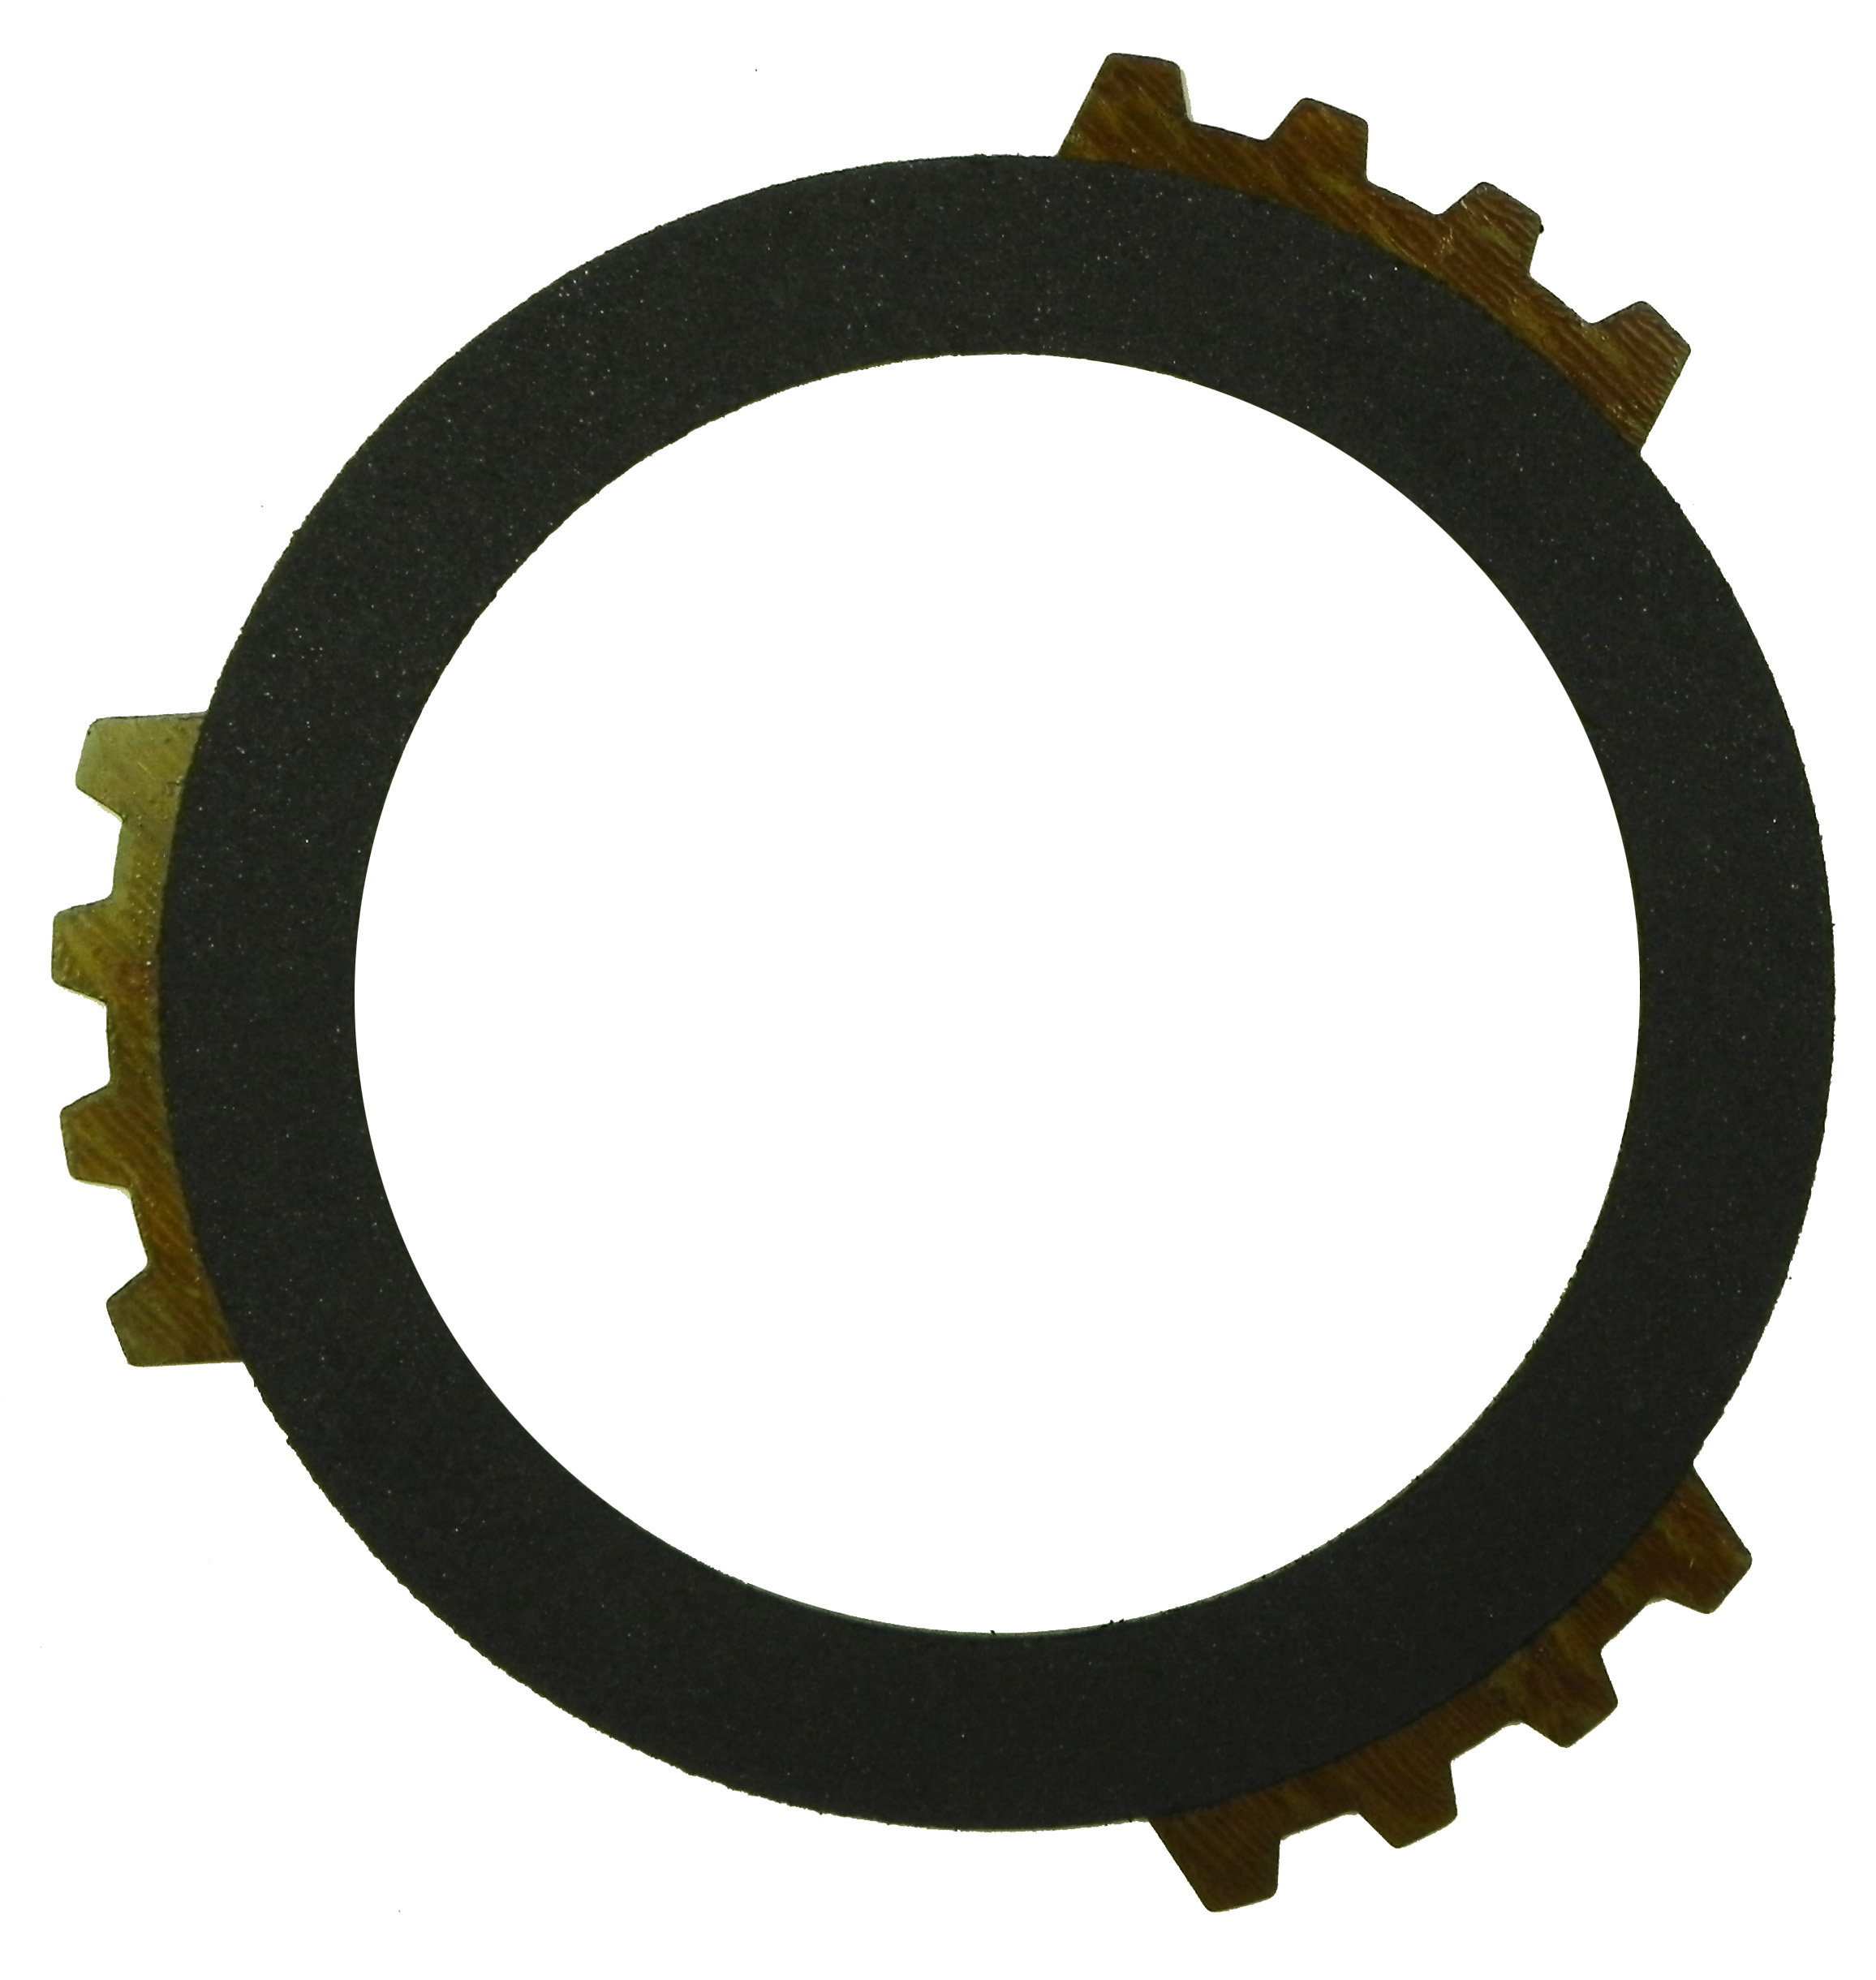 4T60, TH440T4, 4T60E, 4T65E High Energy Friction Clutch Plate